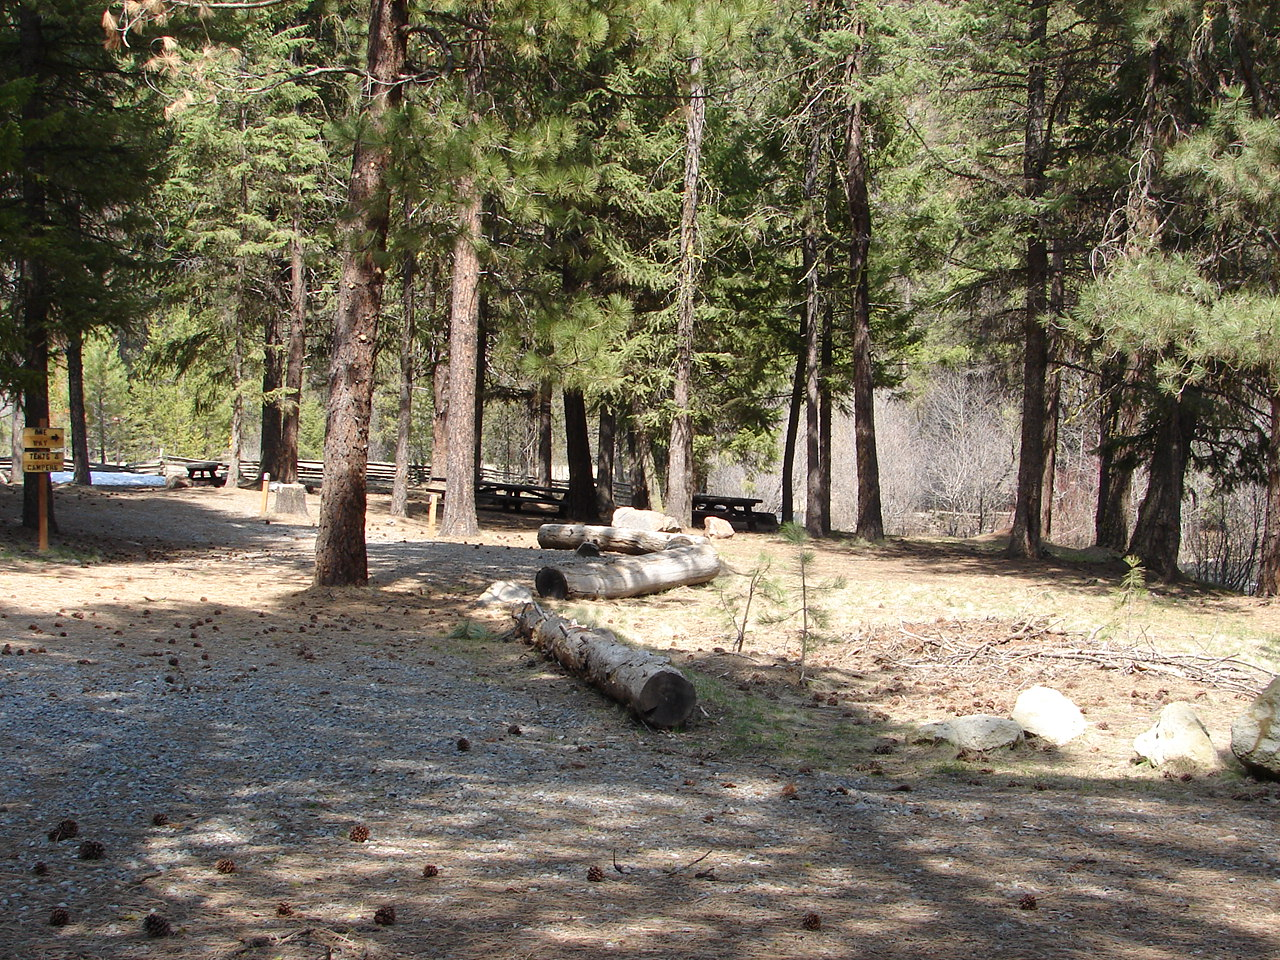 Forest campground in the pine trees